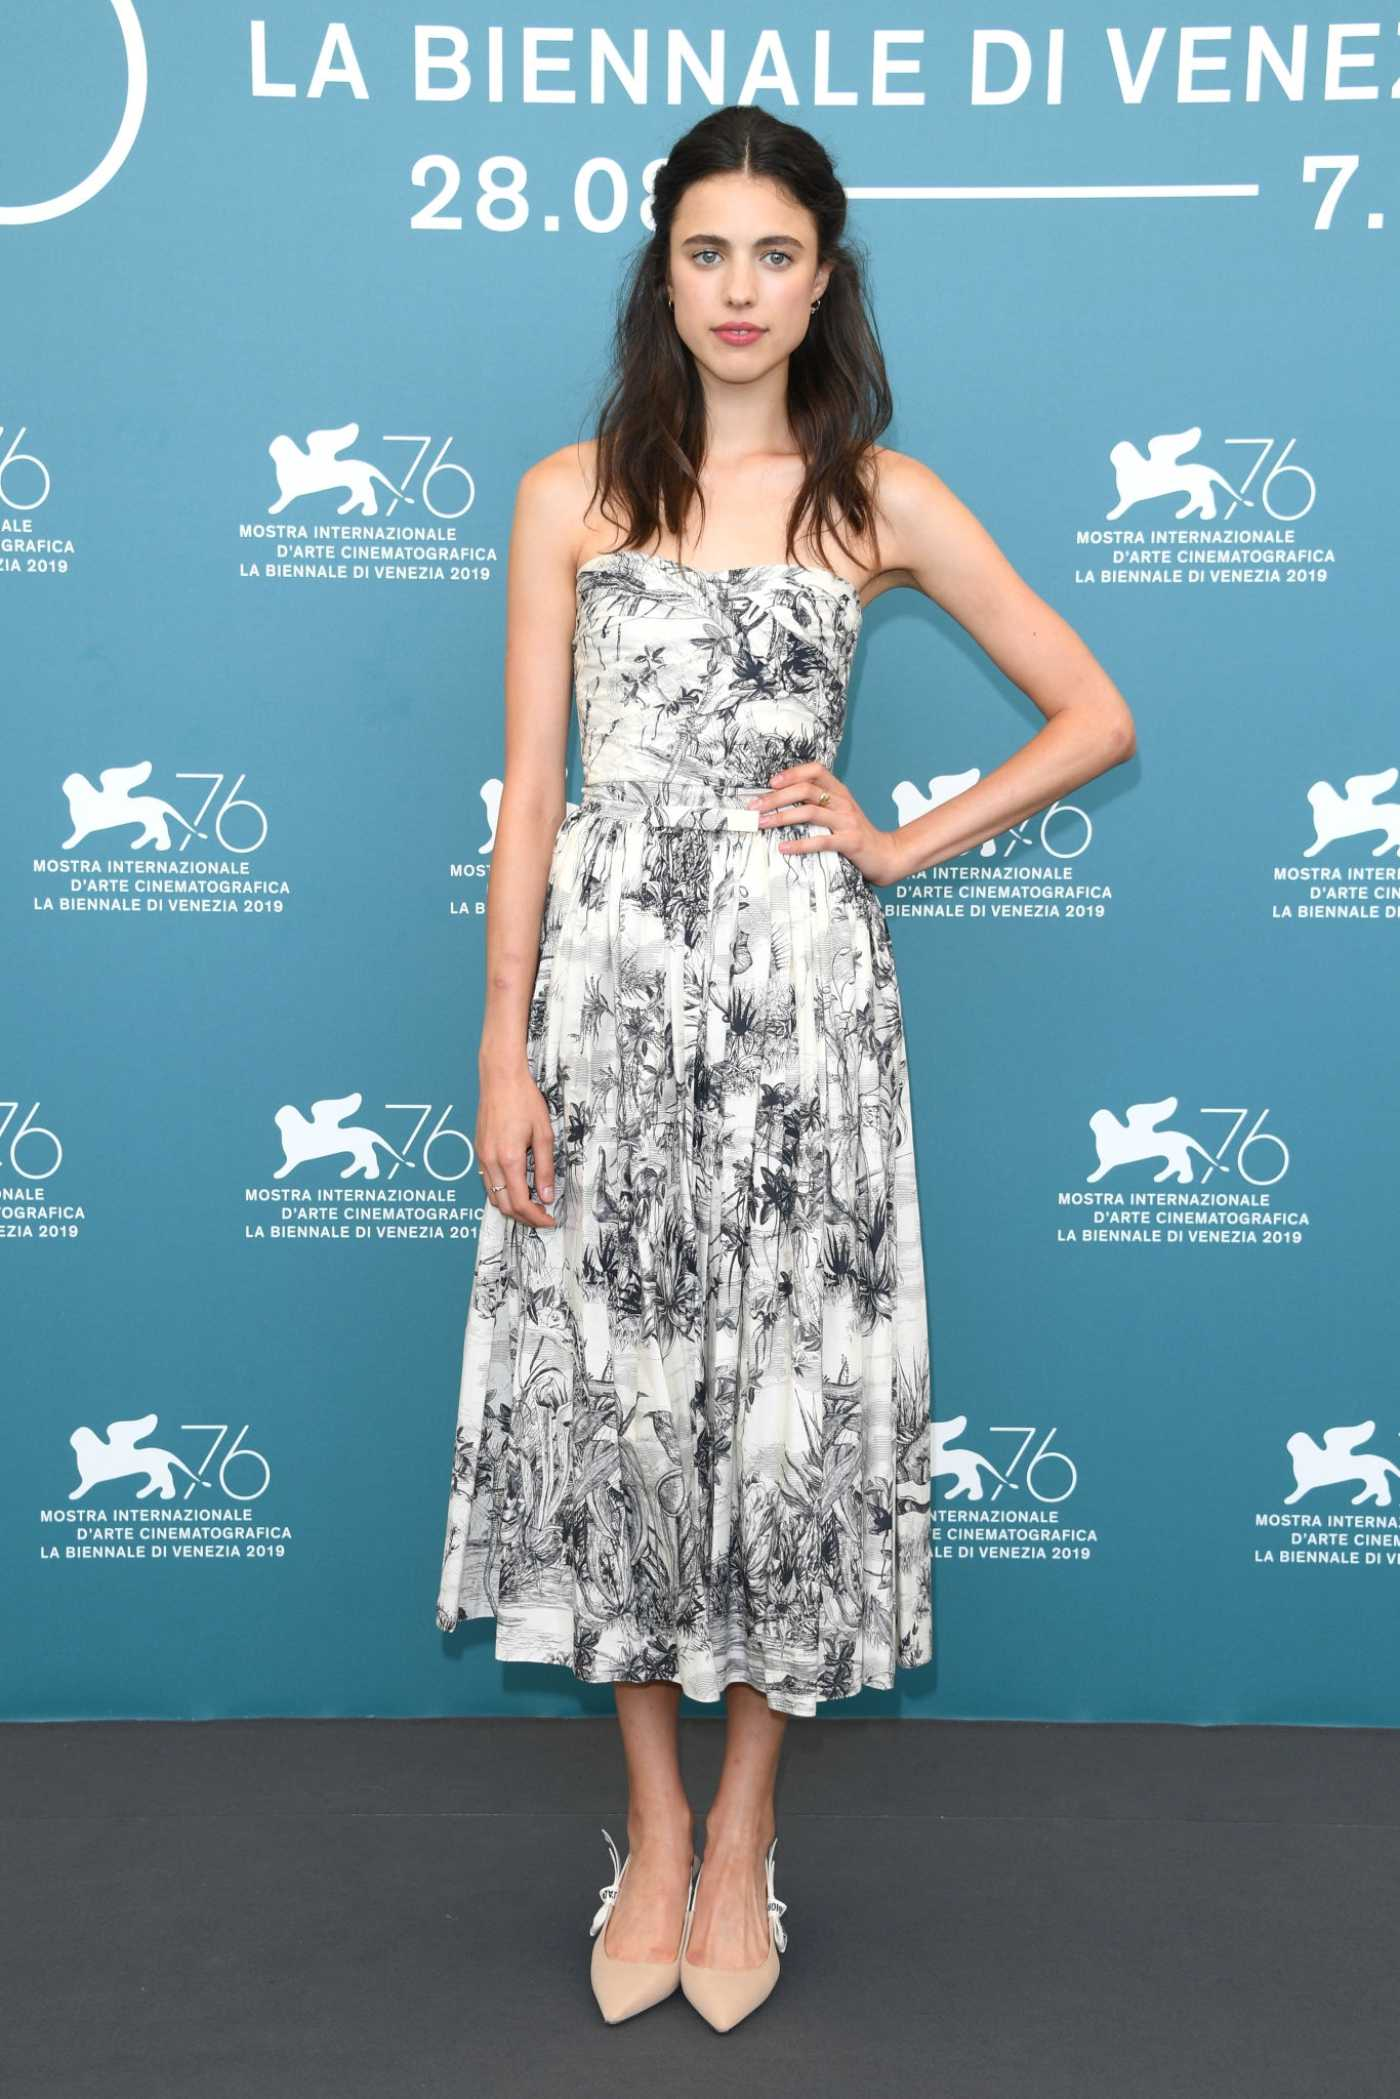 Margaret Qualley Attends Seberg Photocall During the 76th Venice Film Festival in Venice 08/30/2019